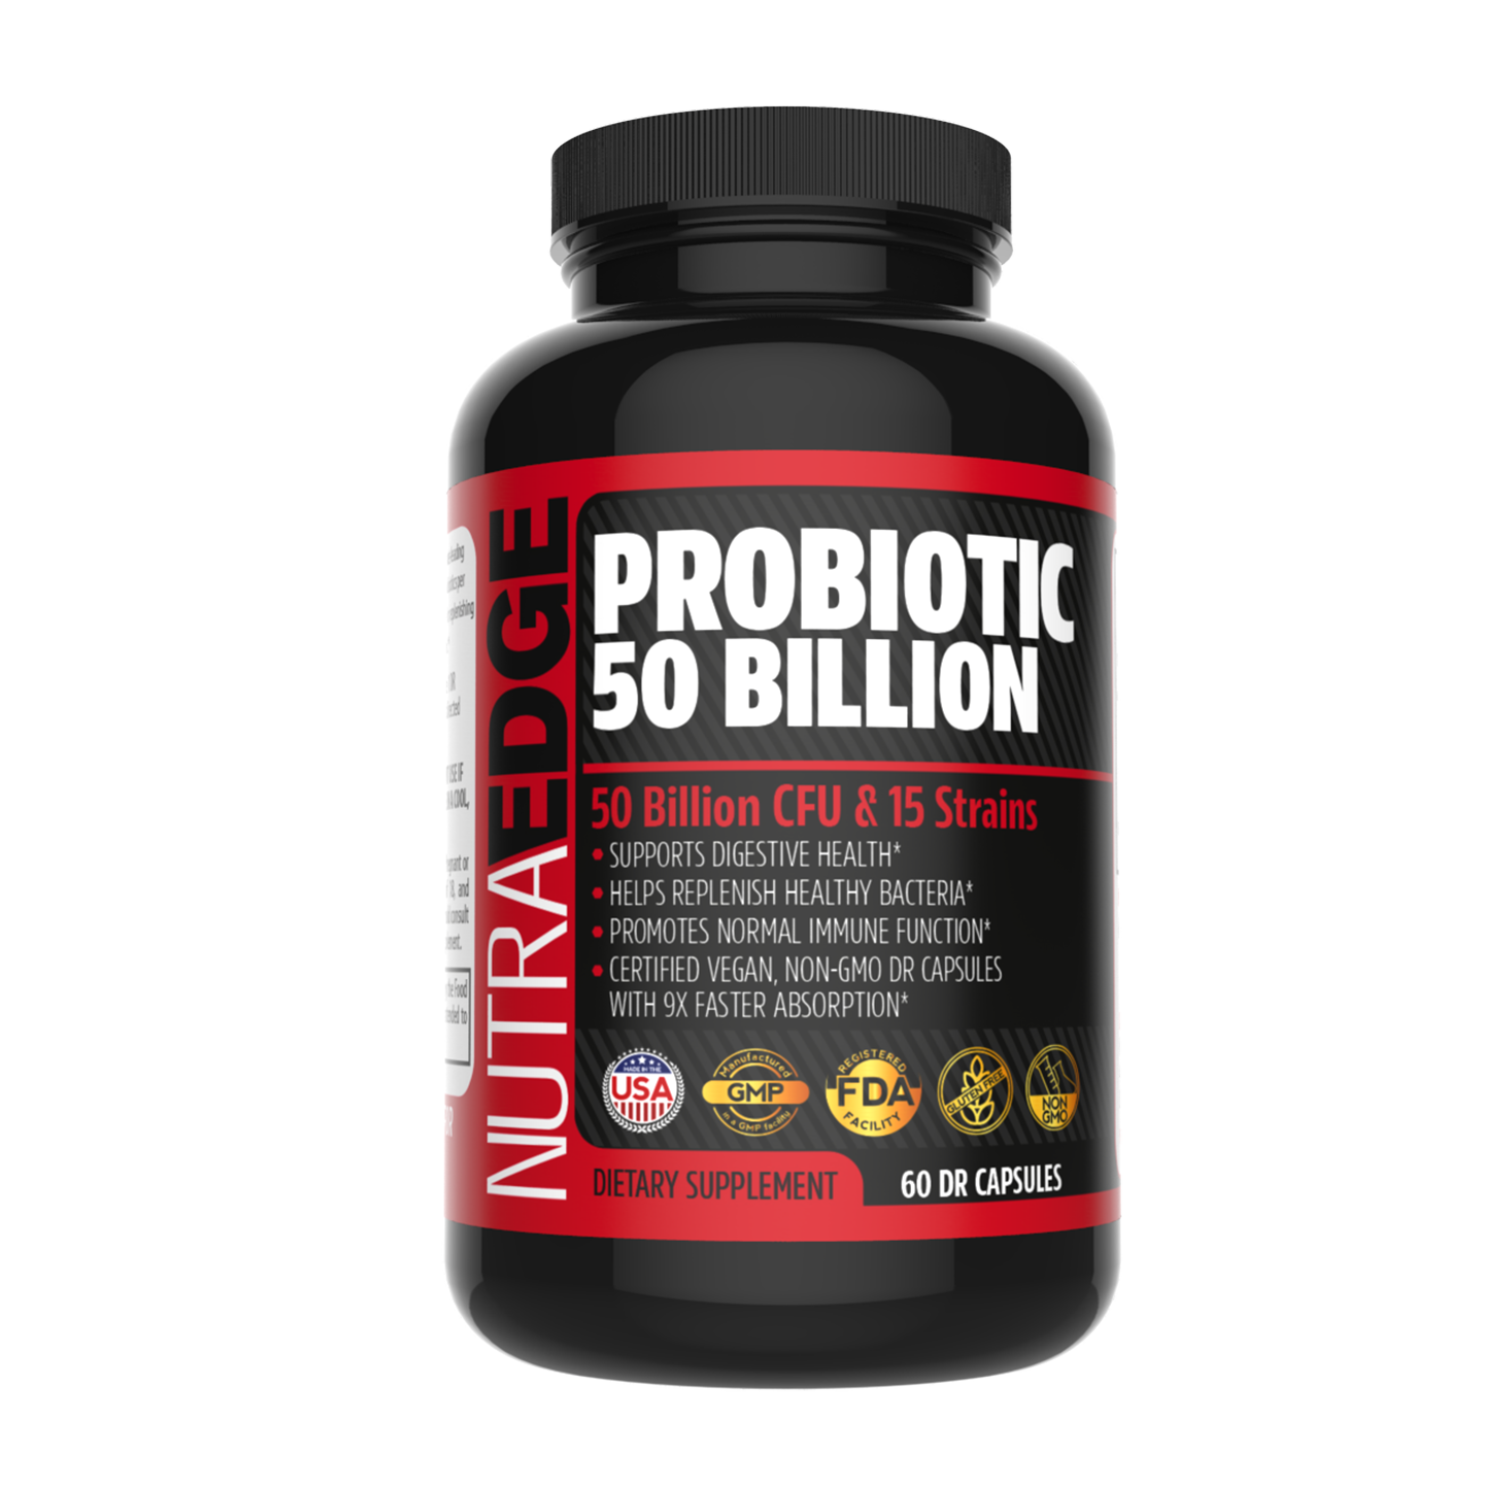 Probiotic 50 Billion CFU & 15 Strains, 60 Daily DRcapsTM Capsules - 9X Faster Absorption, Supports Digestive Health & Immune Function, Helps Replenish healthy Bacteria, certified Vegan, Non-GMO.